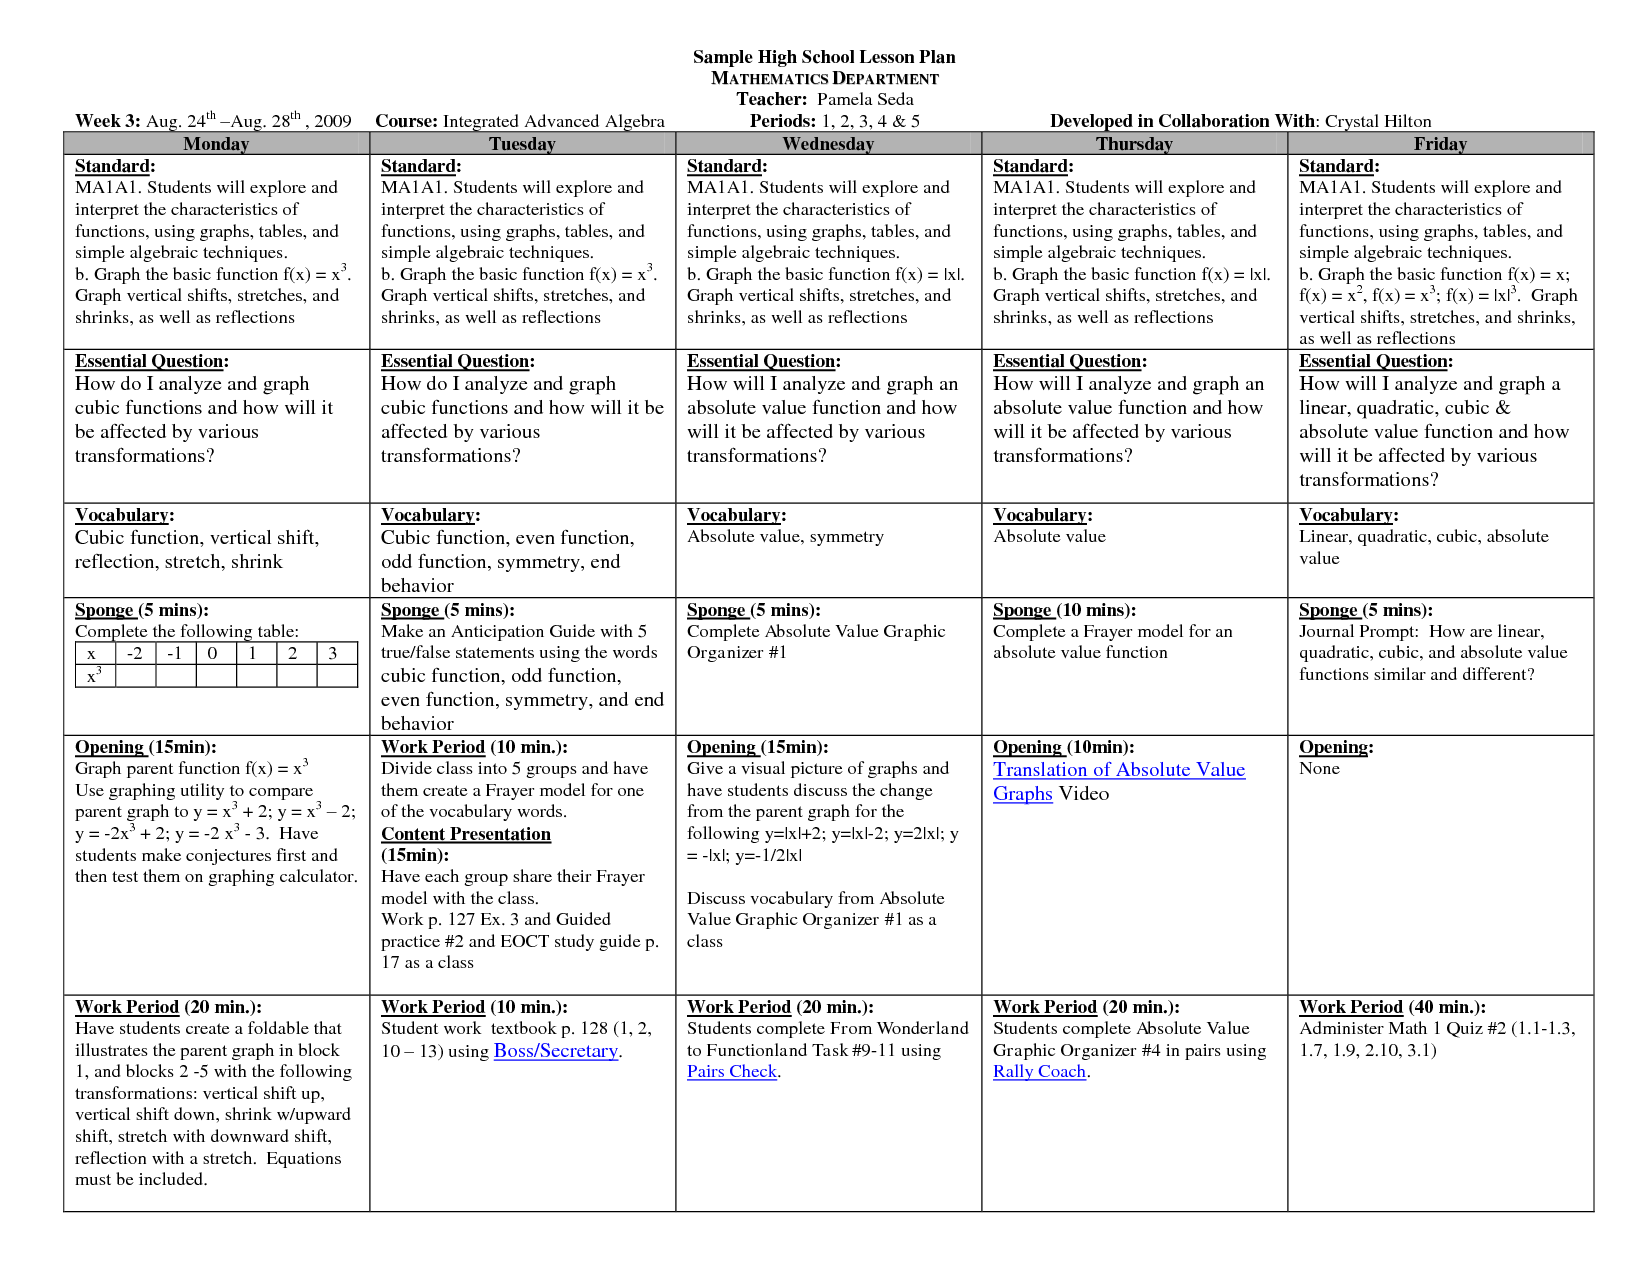 Math lesson plan template high schoolsample hs math weekly for Teachers college lesson plan template